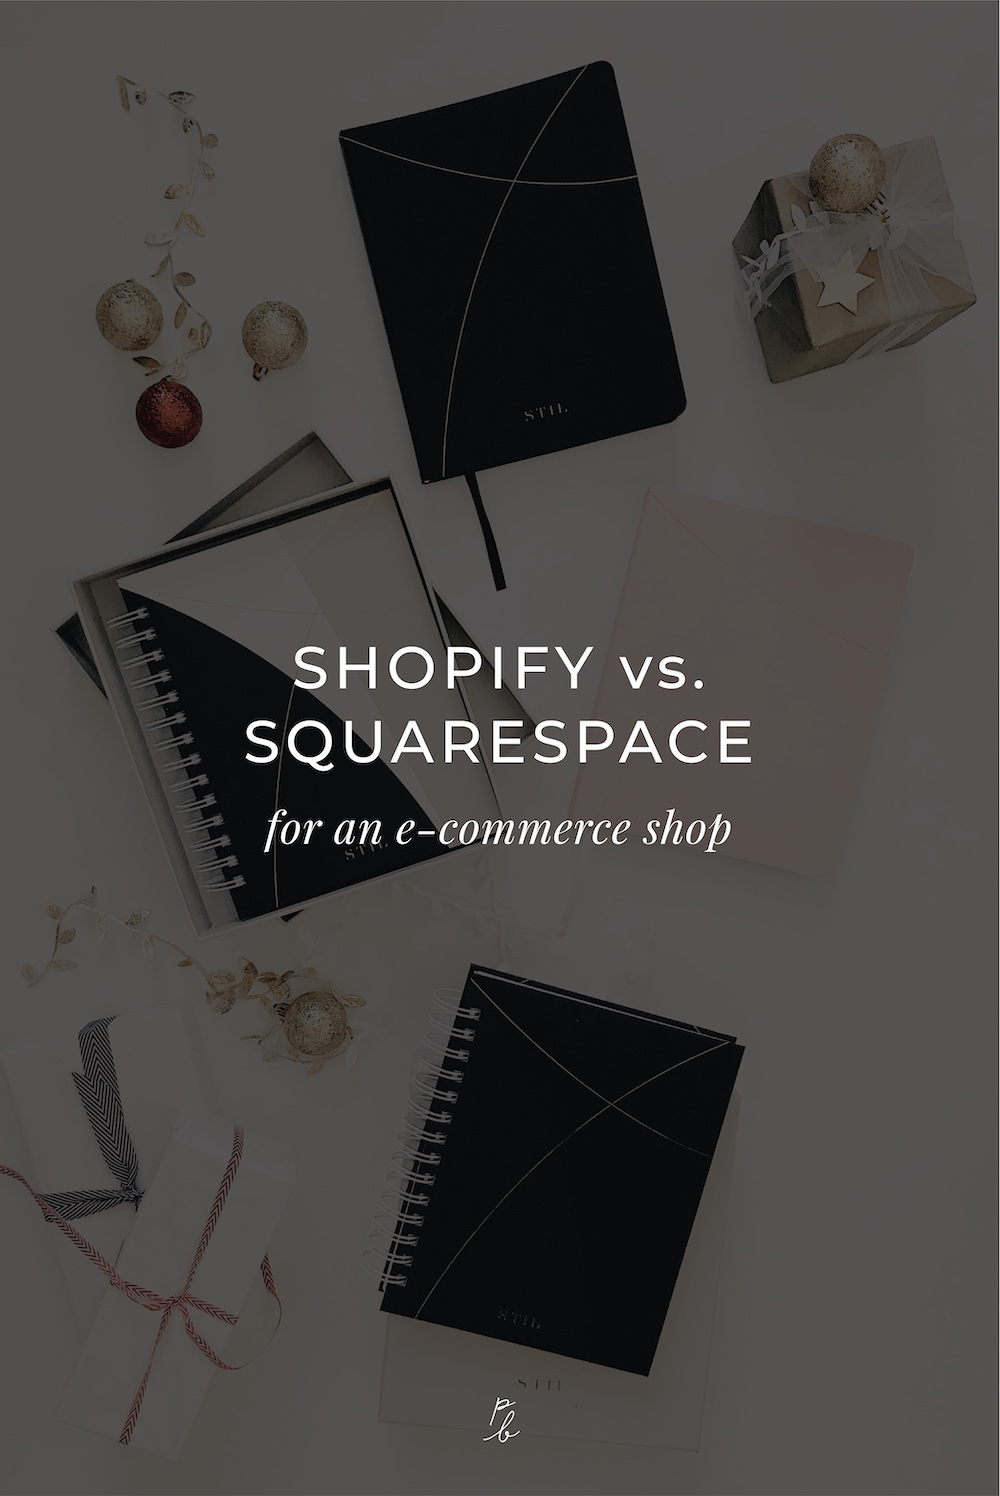 Shopify vs. Squarespace for an e-commerce shop.jpg